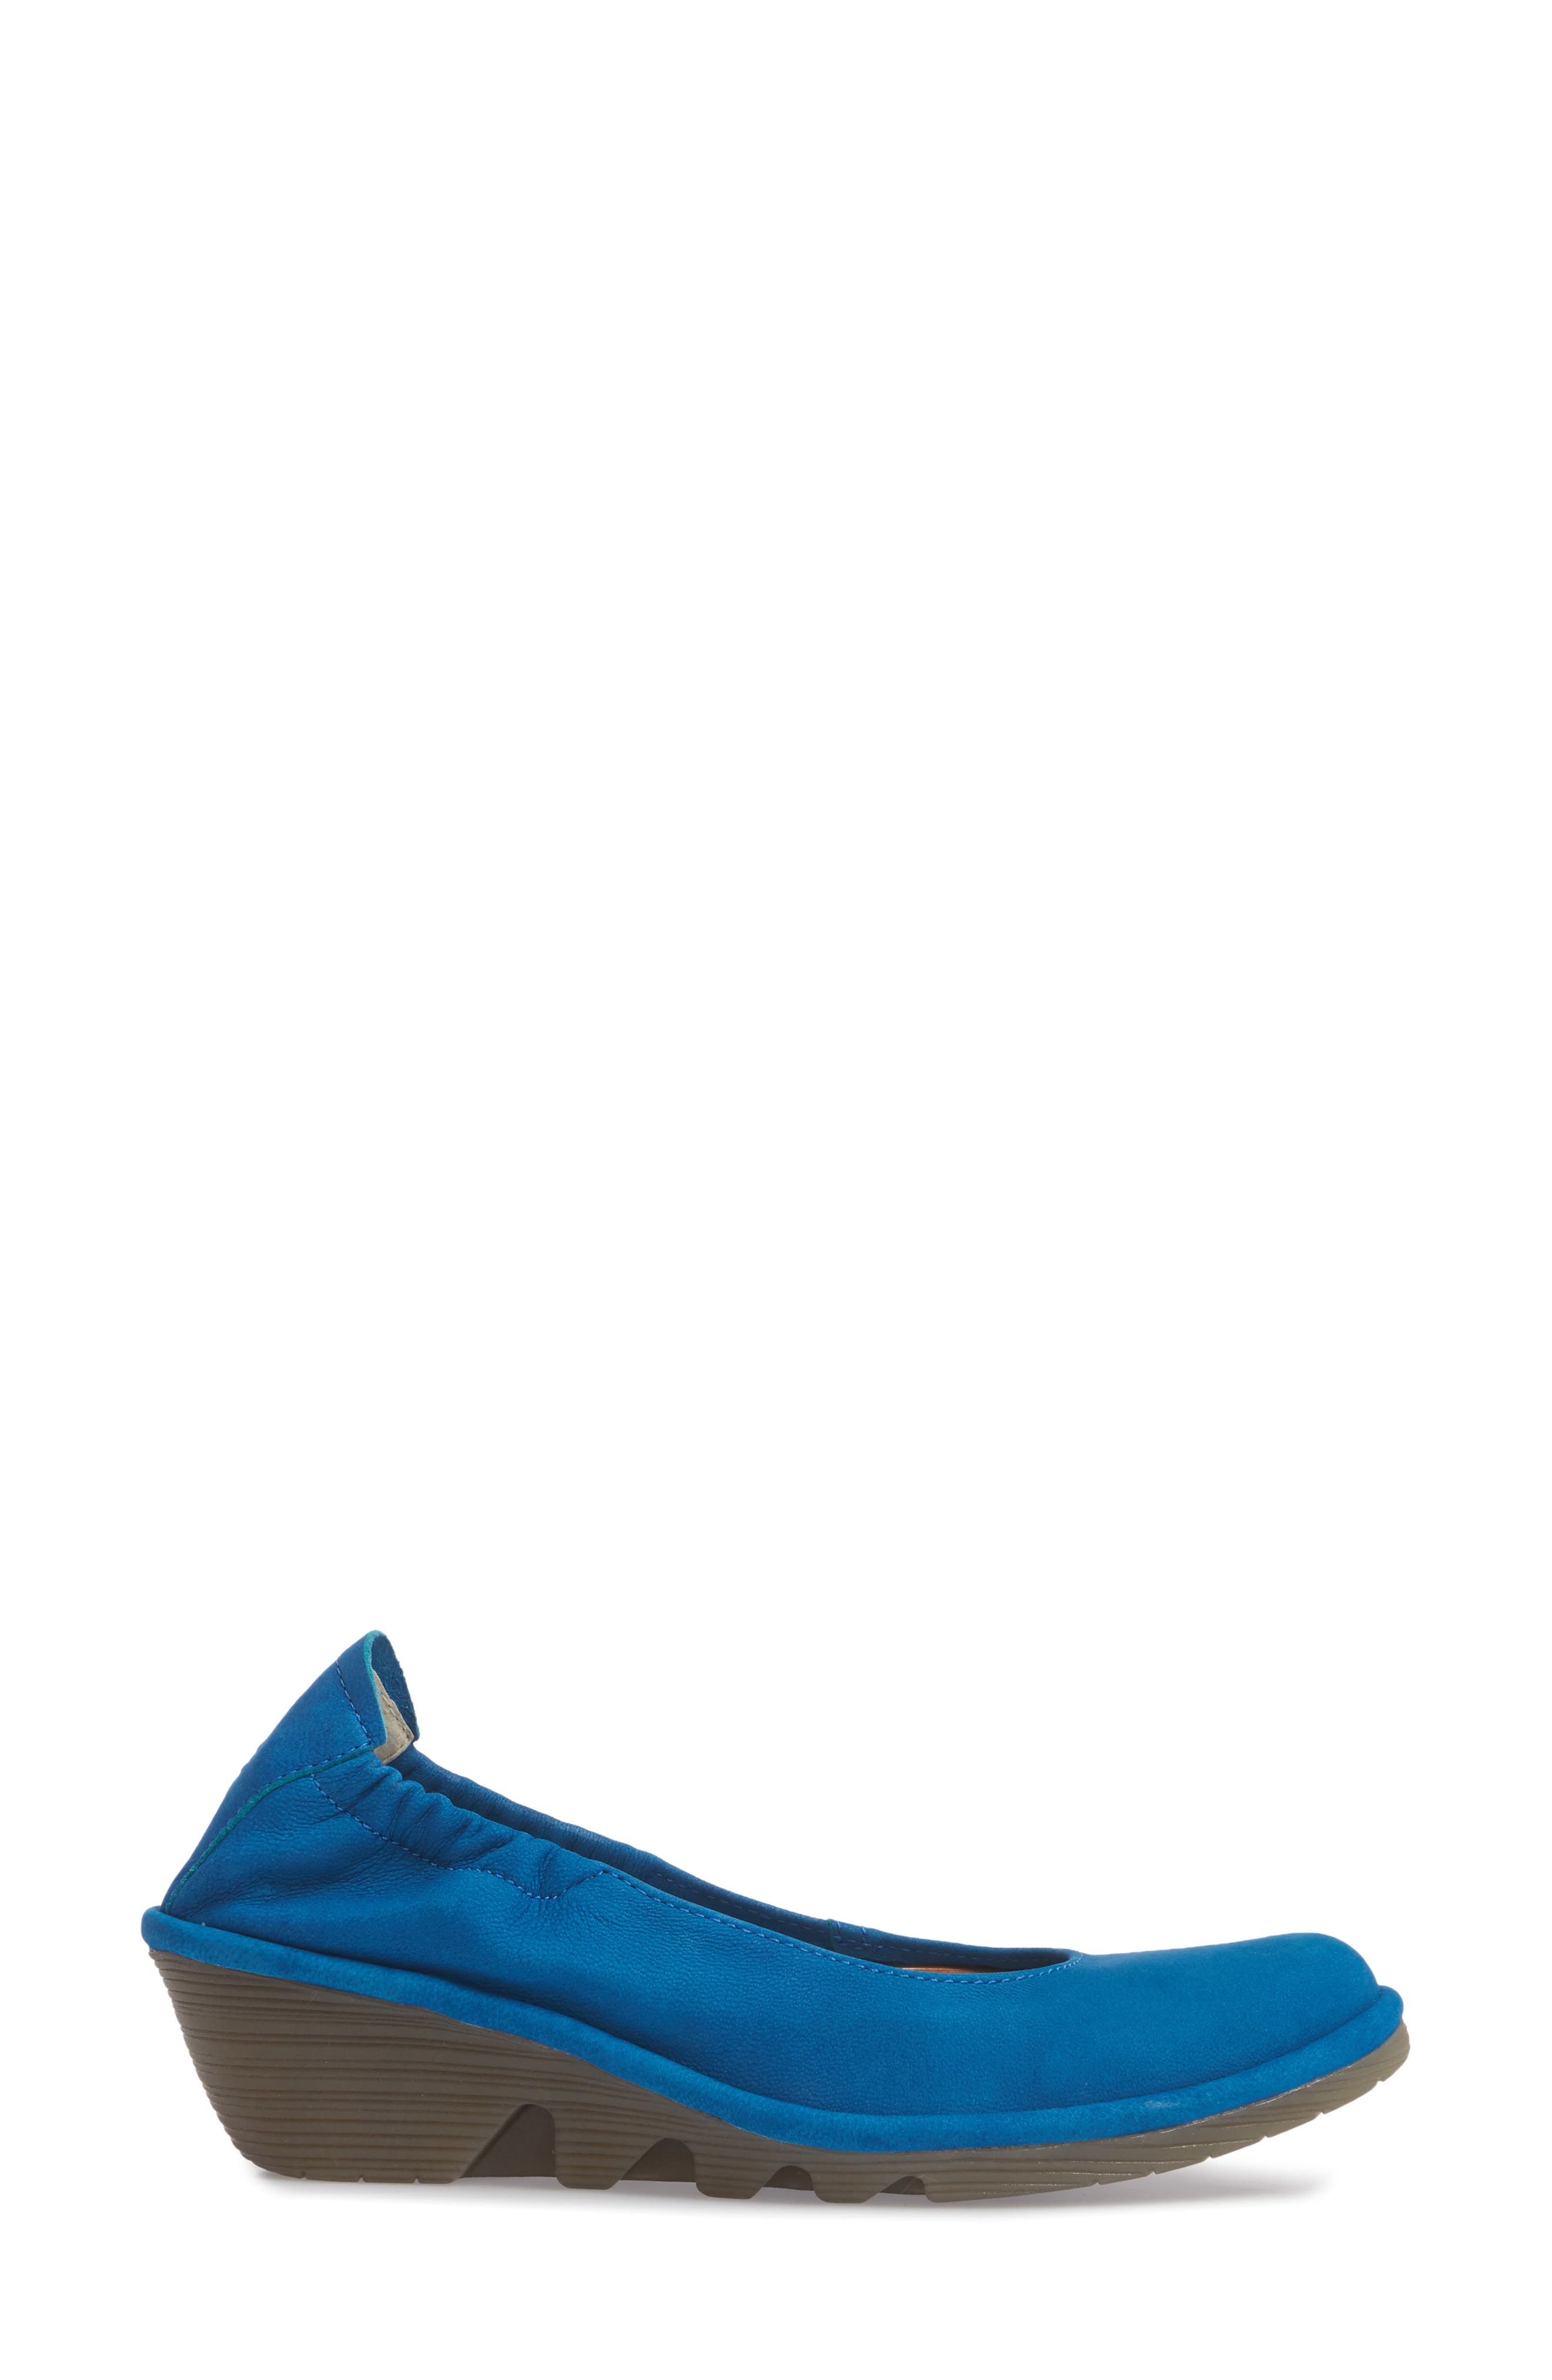 Pled Wedge,                             Alternate thumbnail 3, color,                             ELECTRIC BLUE CUPIDO LEATHER